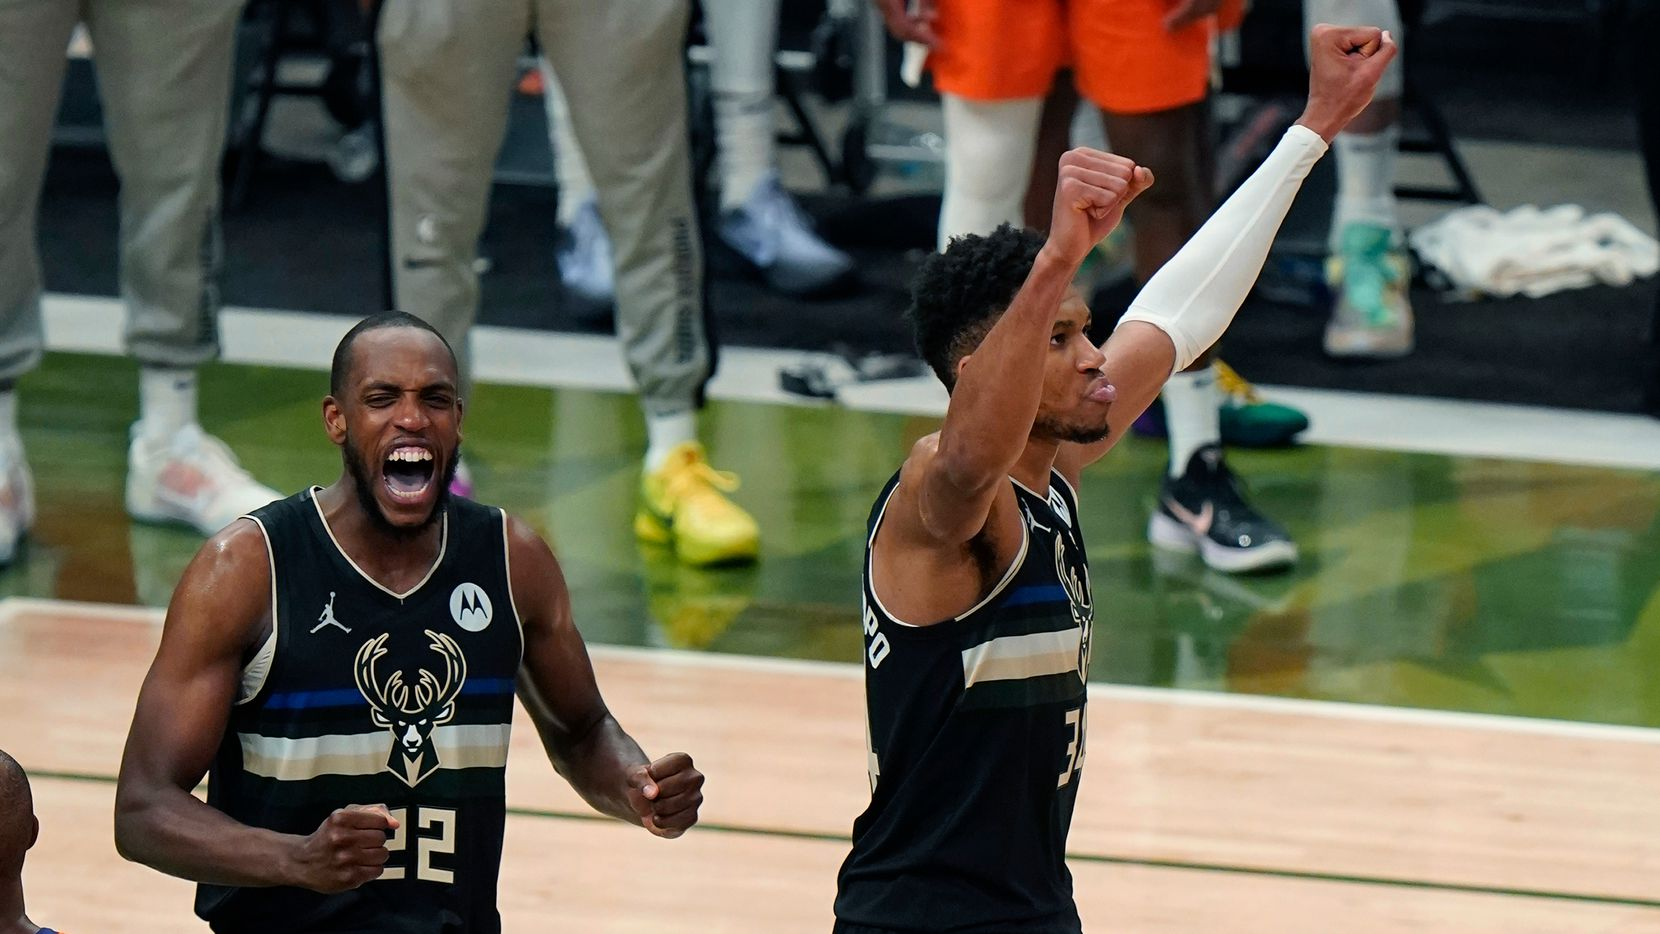 Milwaukee Bucks forward Khris Middleton (22) and forward Giannis Antetokounmpo reacts as time expires during the second half of Game 6 of basketball's NBA Finals against the Phoenix Suns in Milwaukee, Tuesday, July 20, 2021. The Bucks won 105-98. (AP Photo/Paul Sancya)